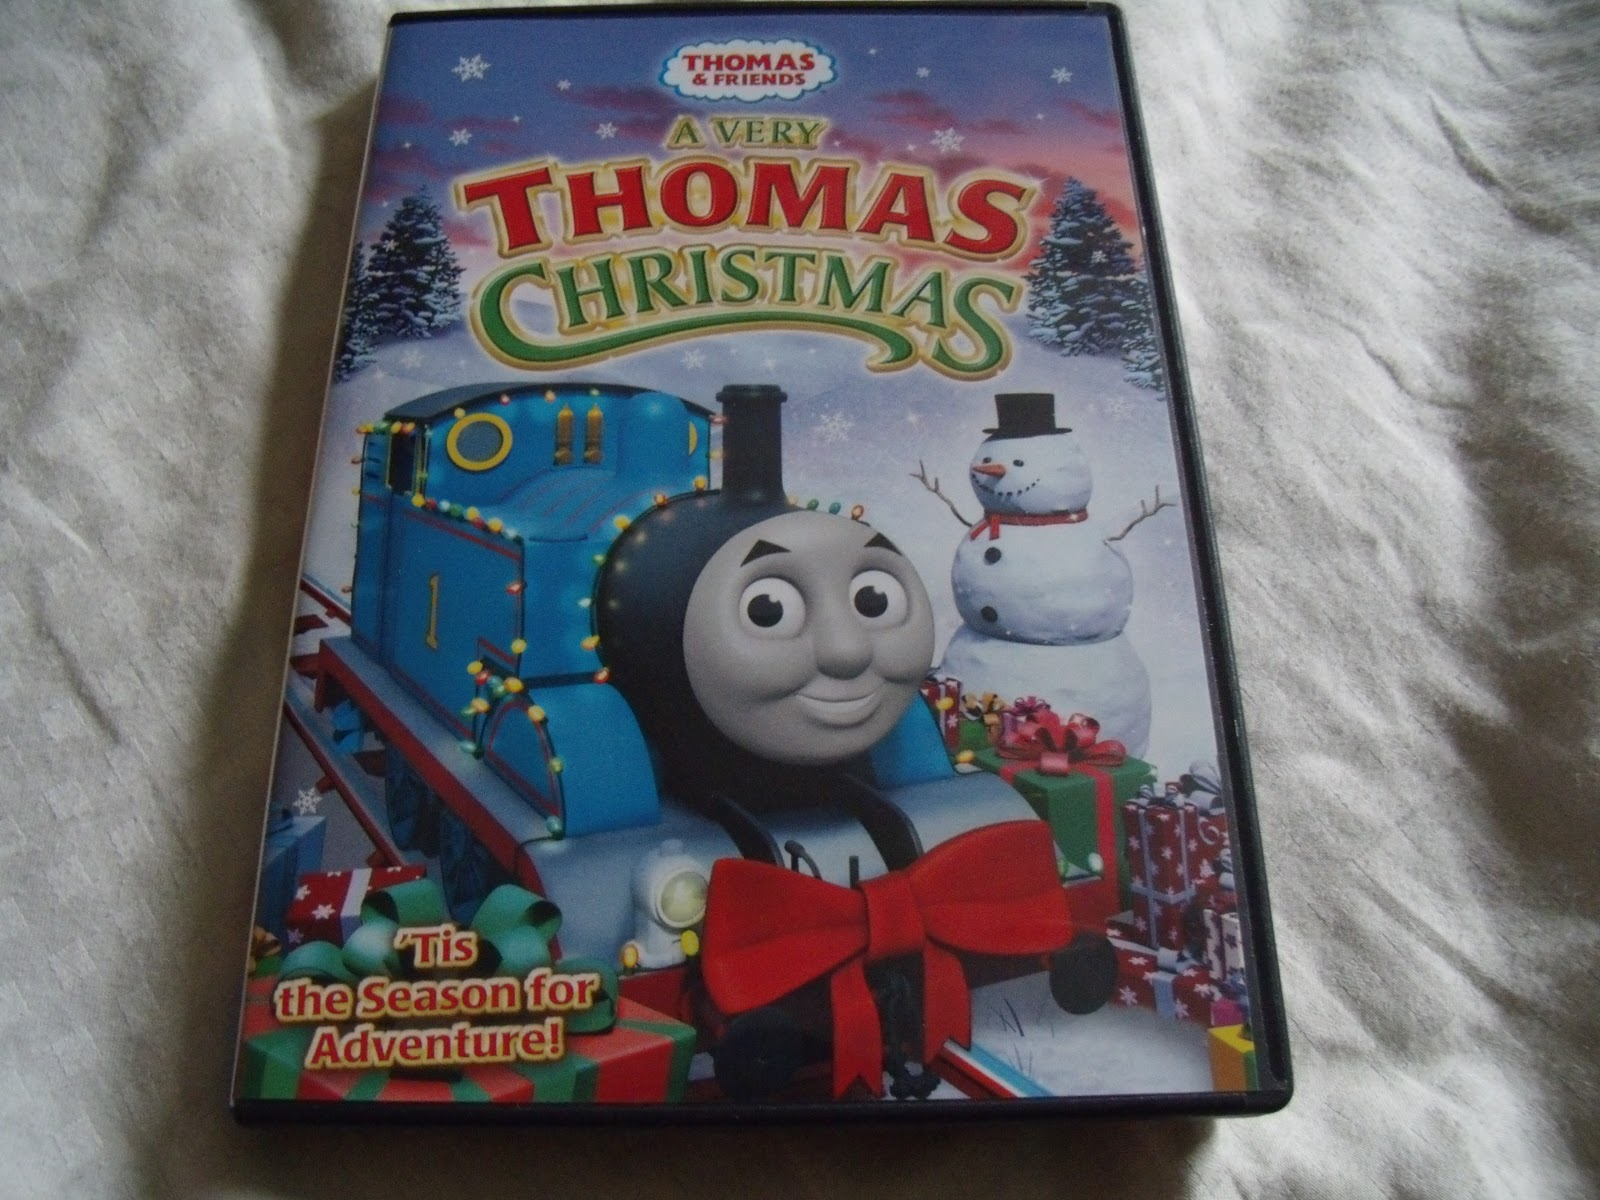 i wish i could have video taped my interview with dane as he explained what a very thomas christmas was about he explained to me that emily another